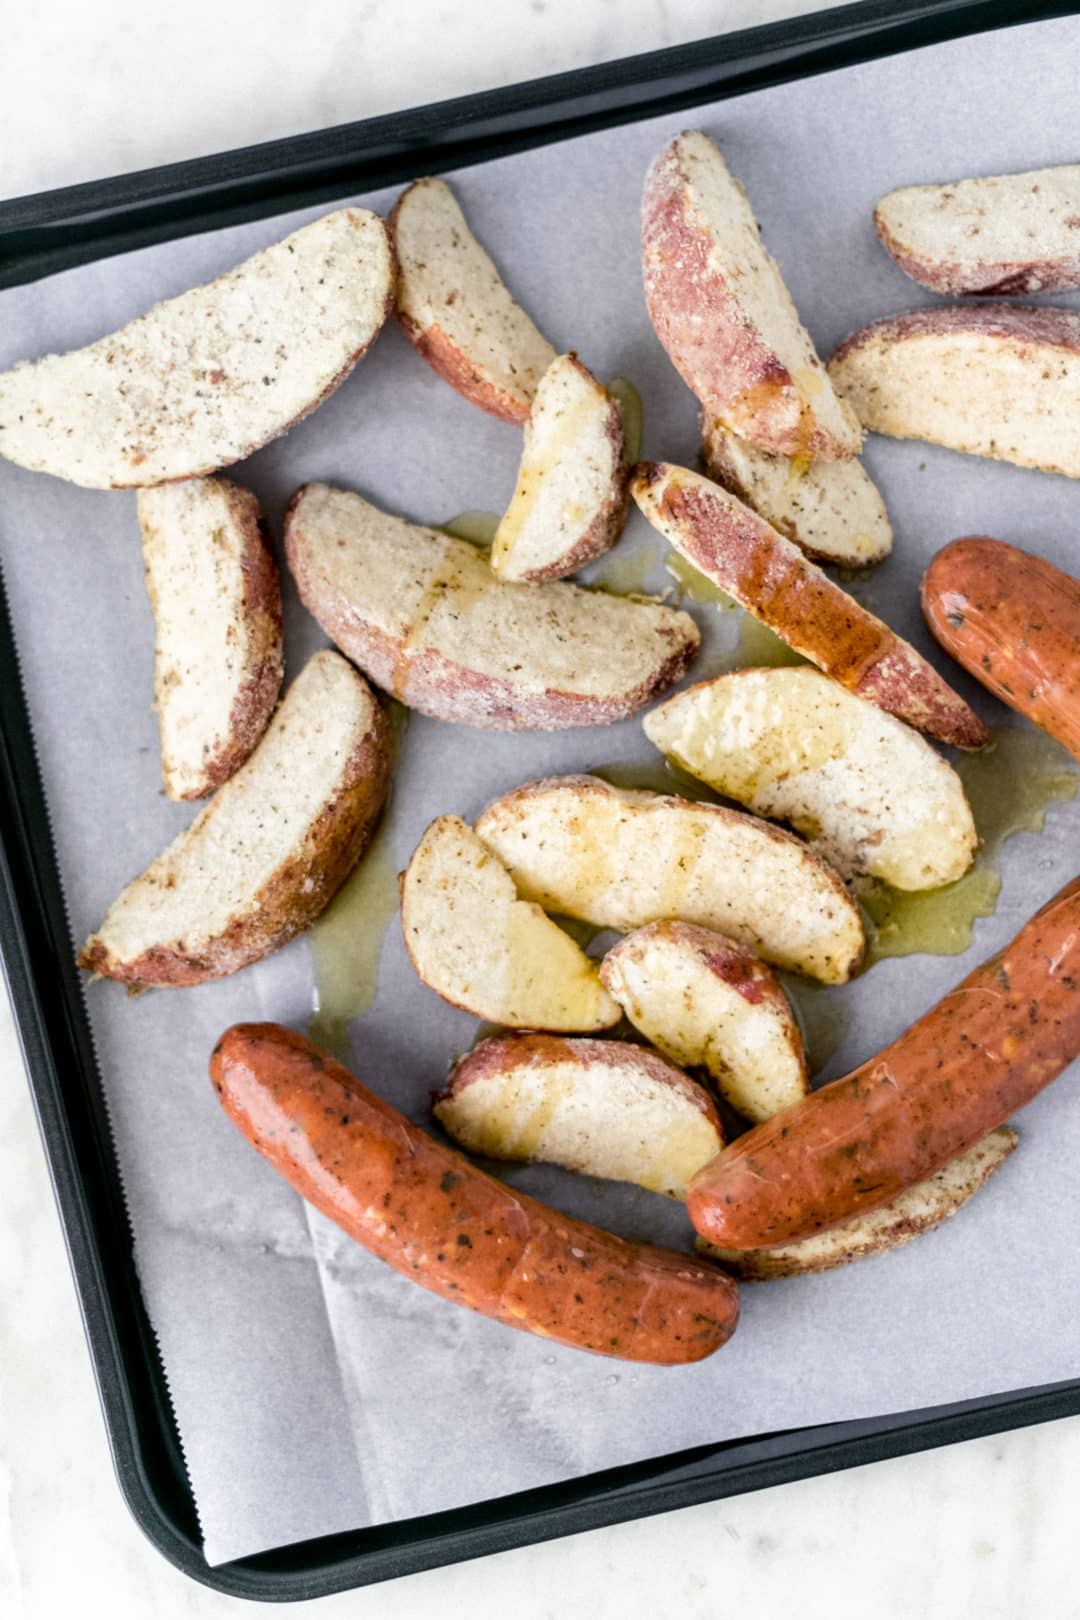 sausage, potato wedges, and olive oil on sheet pan